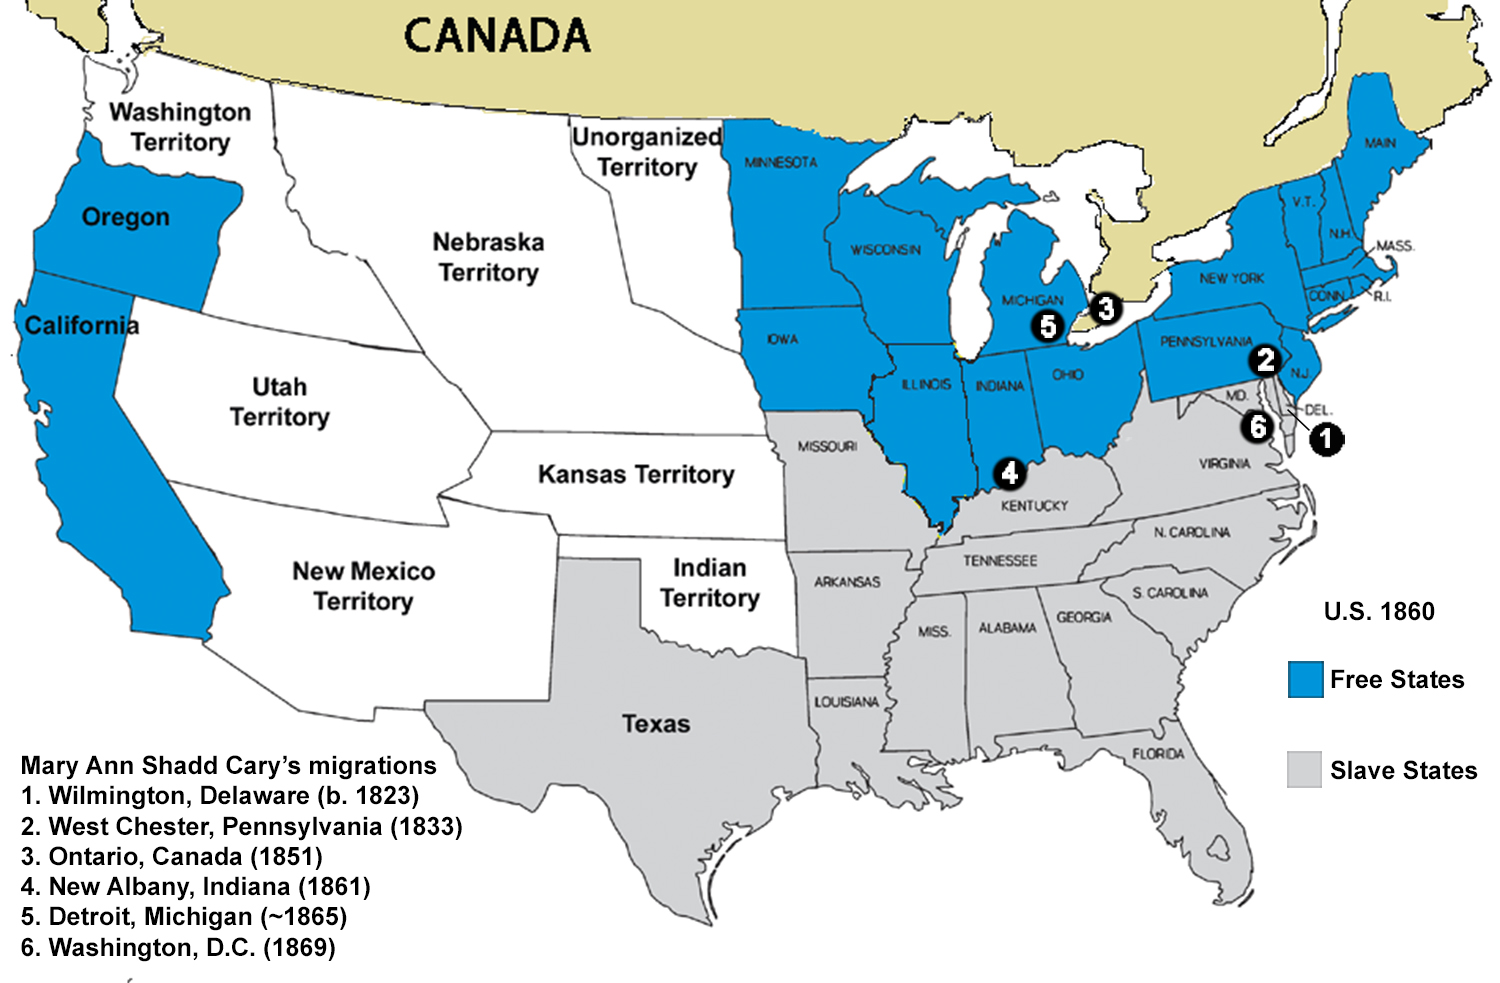 Map of Slave States in 1860 (JPG) for Teaching with Historic Places lesson plan about Mary Ann Shadd Cary